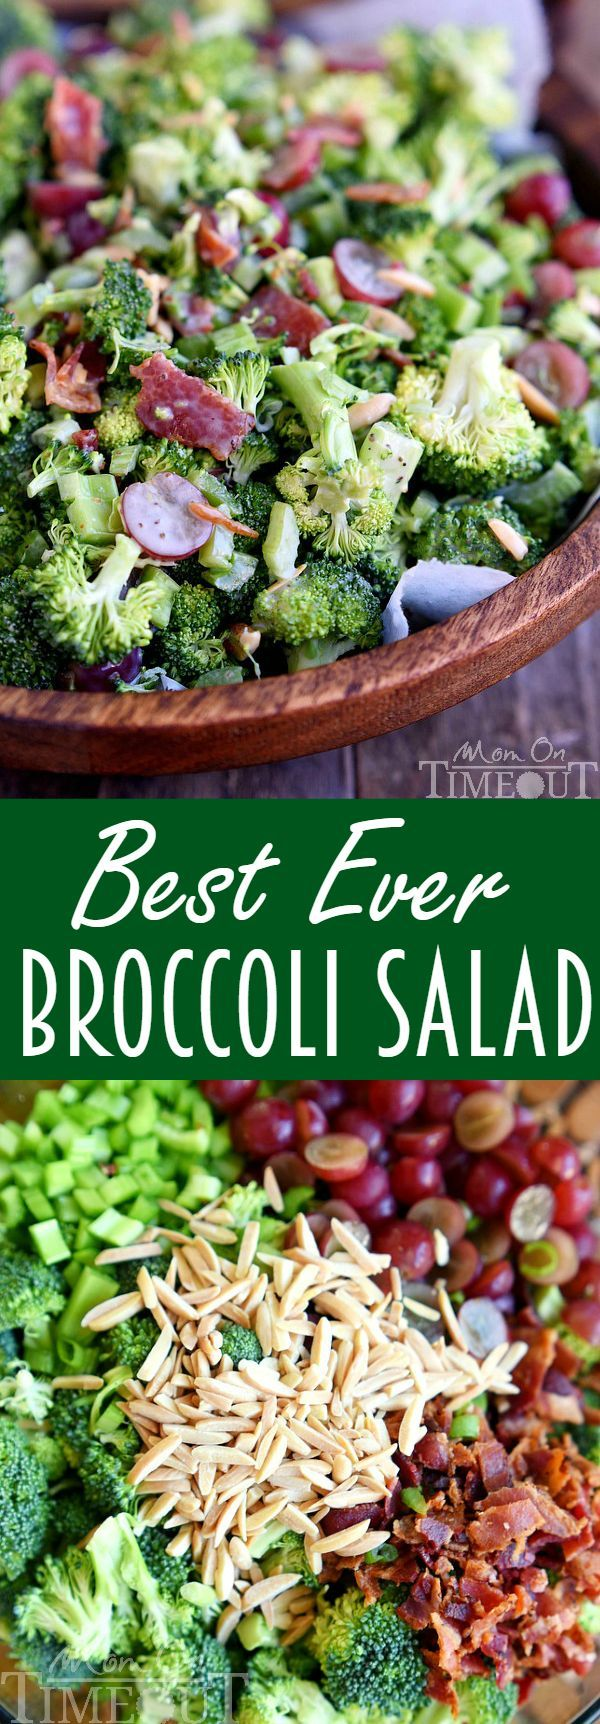 Broccoli Salad recipe is bursting with flavor! Packed full of broccoli, bacon, grapes, almonds and more - every bite is delicious! | MomOnTimeout.com